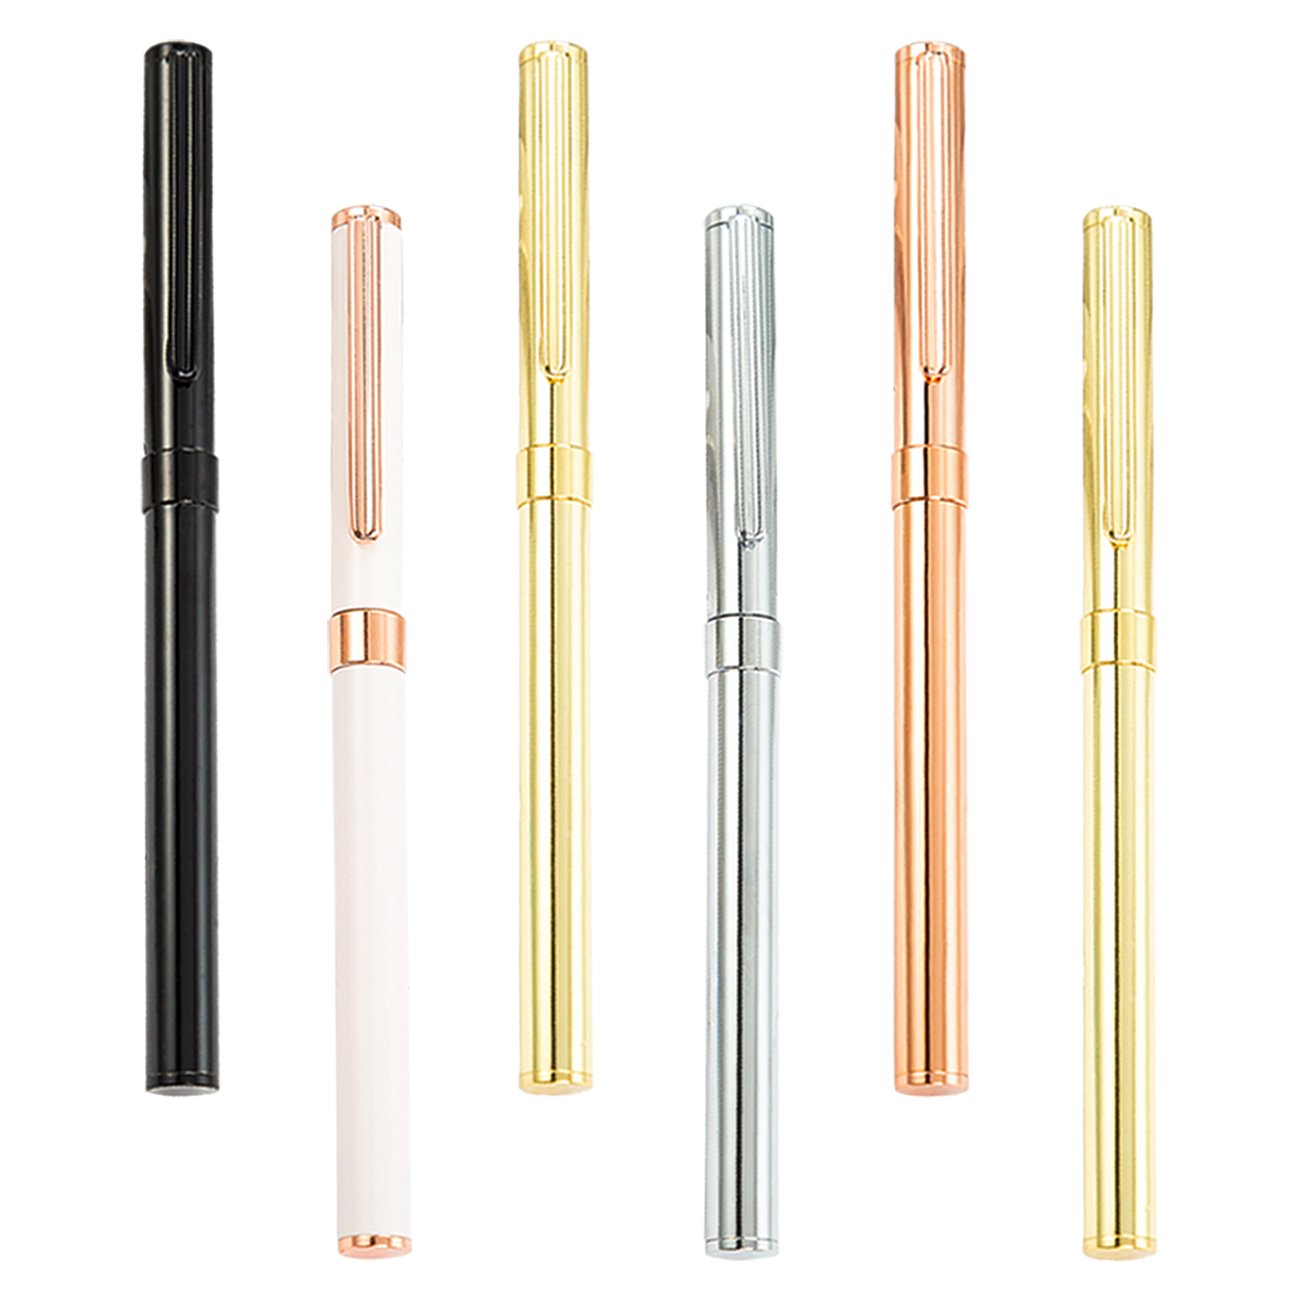 Hot sale Customized Factory price roller ball pen school & office supplies high quality metal roller Pen